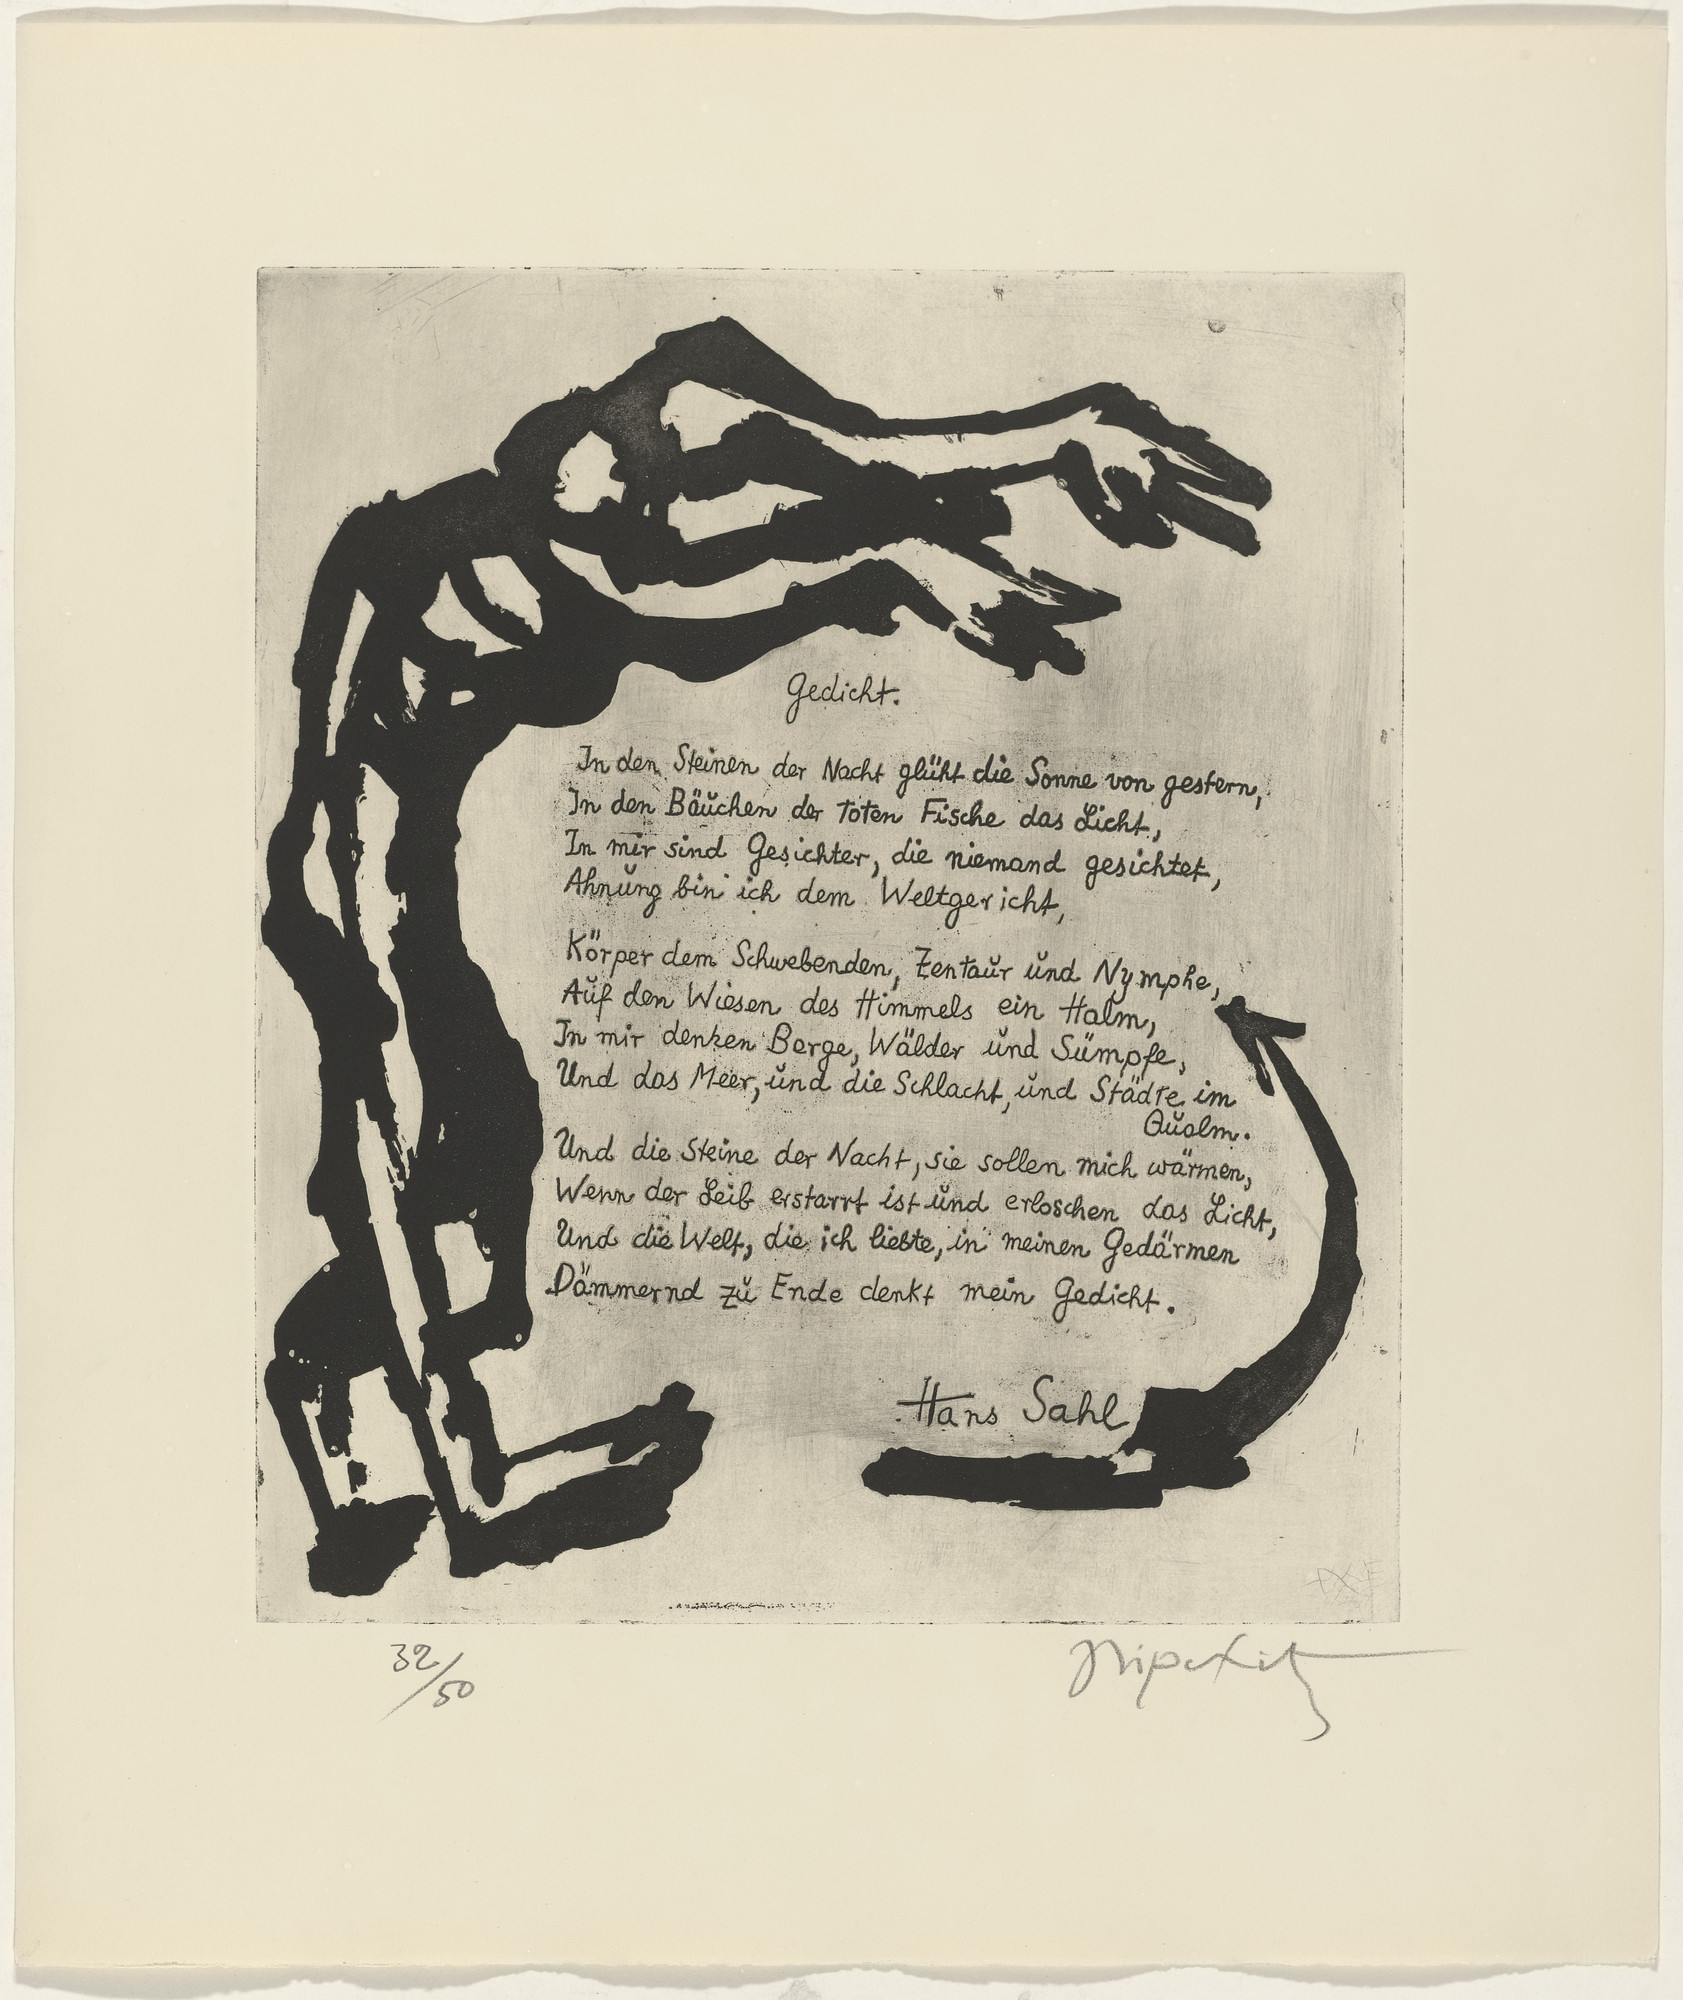 Jacques Lipchitz, Hans Sahl. In-text plate (folio 13) from 21 Etchings and Poems. 1960